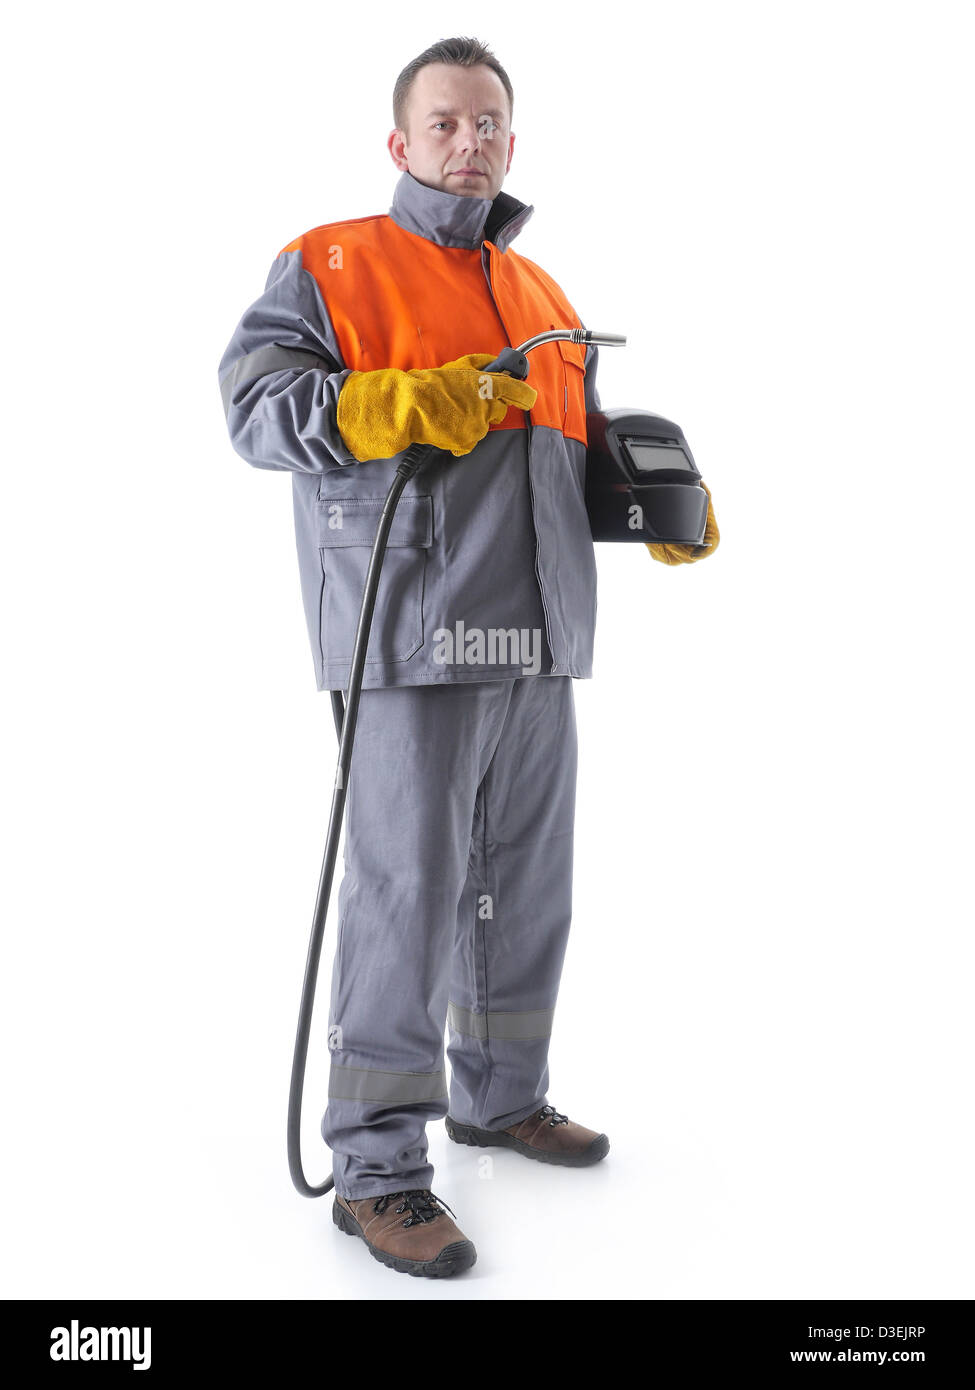 Gas Welding Gun Stock Photos Images Alamy Torch Diagram Welder Wearing Protective Suit Holding Hood And On White Image